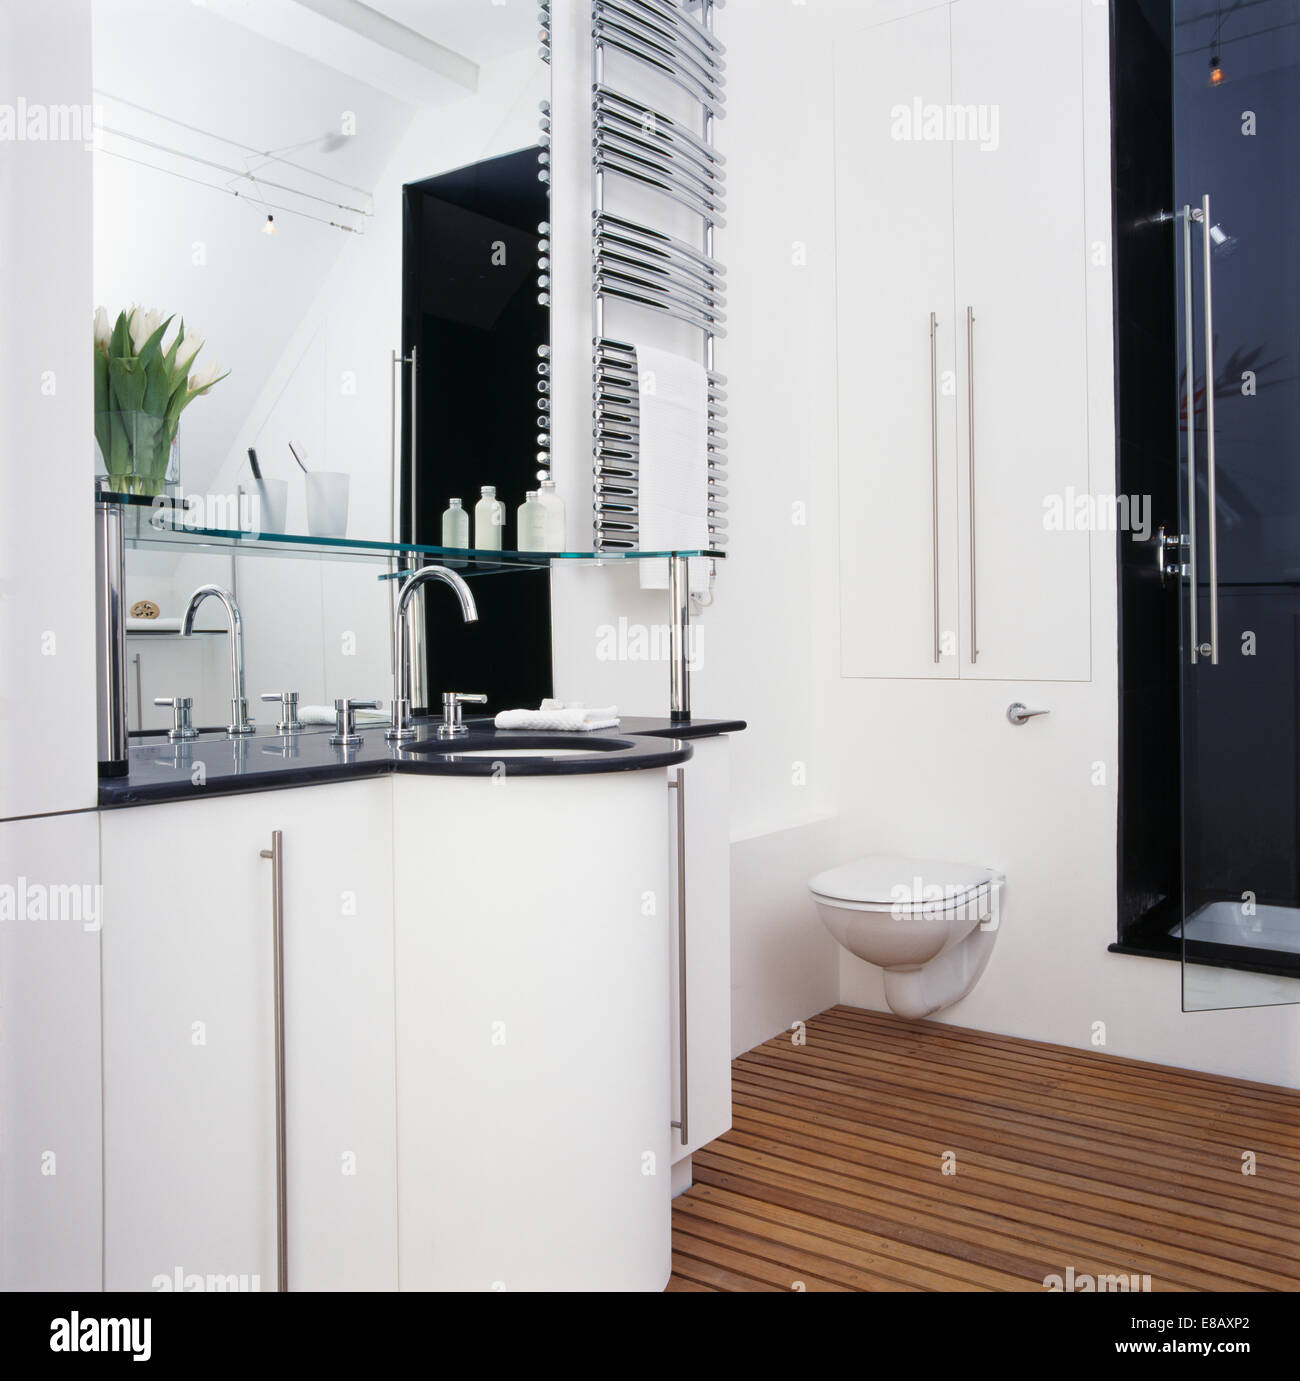 Slatted wooden flooring in modern white bathroom with wall mounted ...